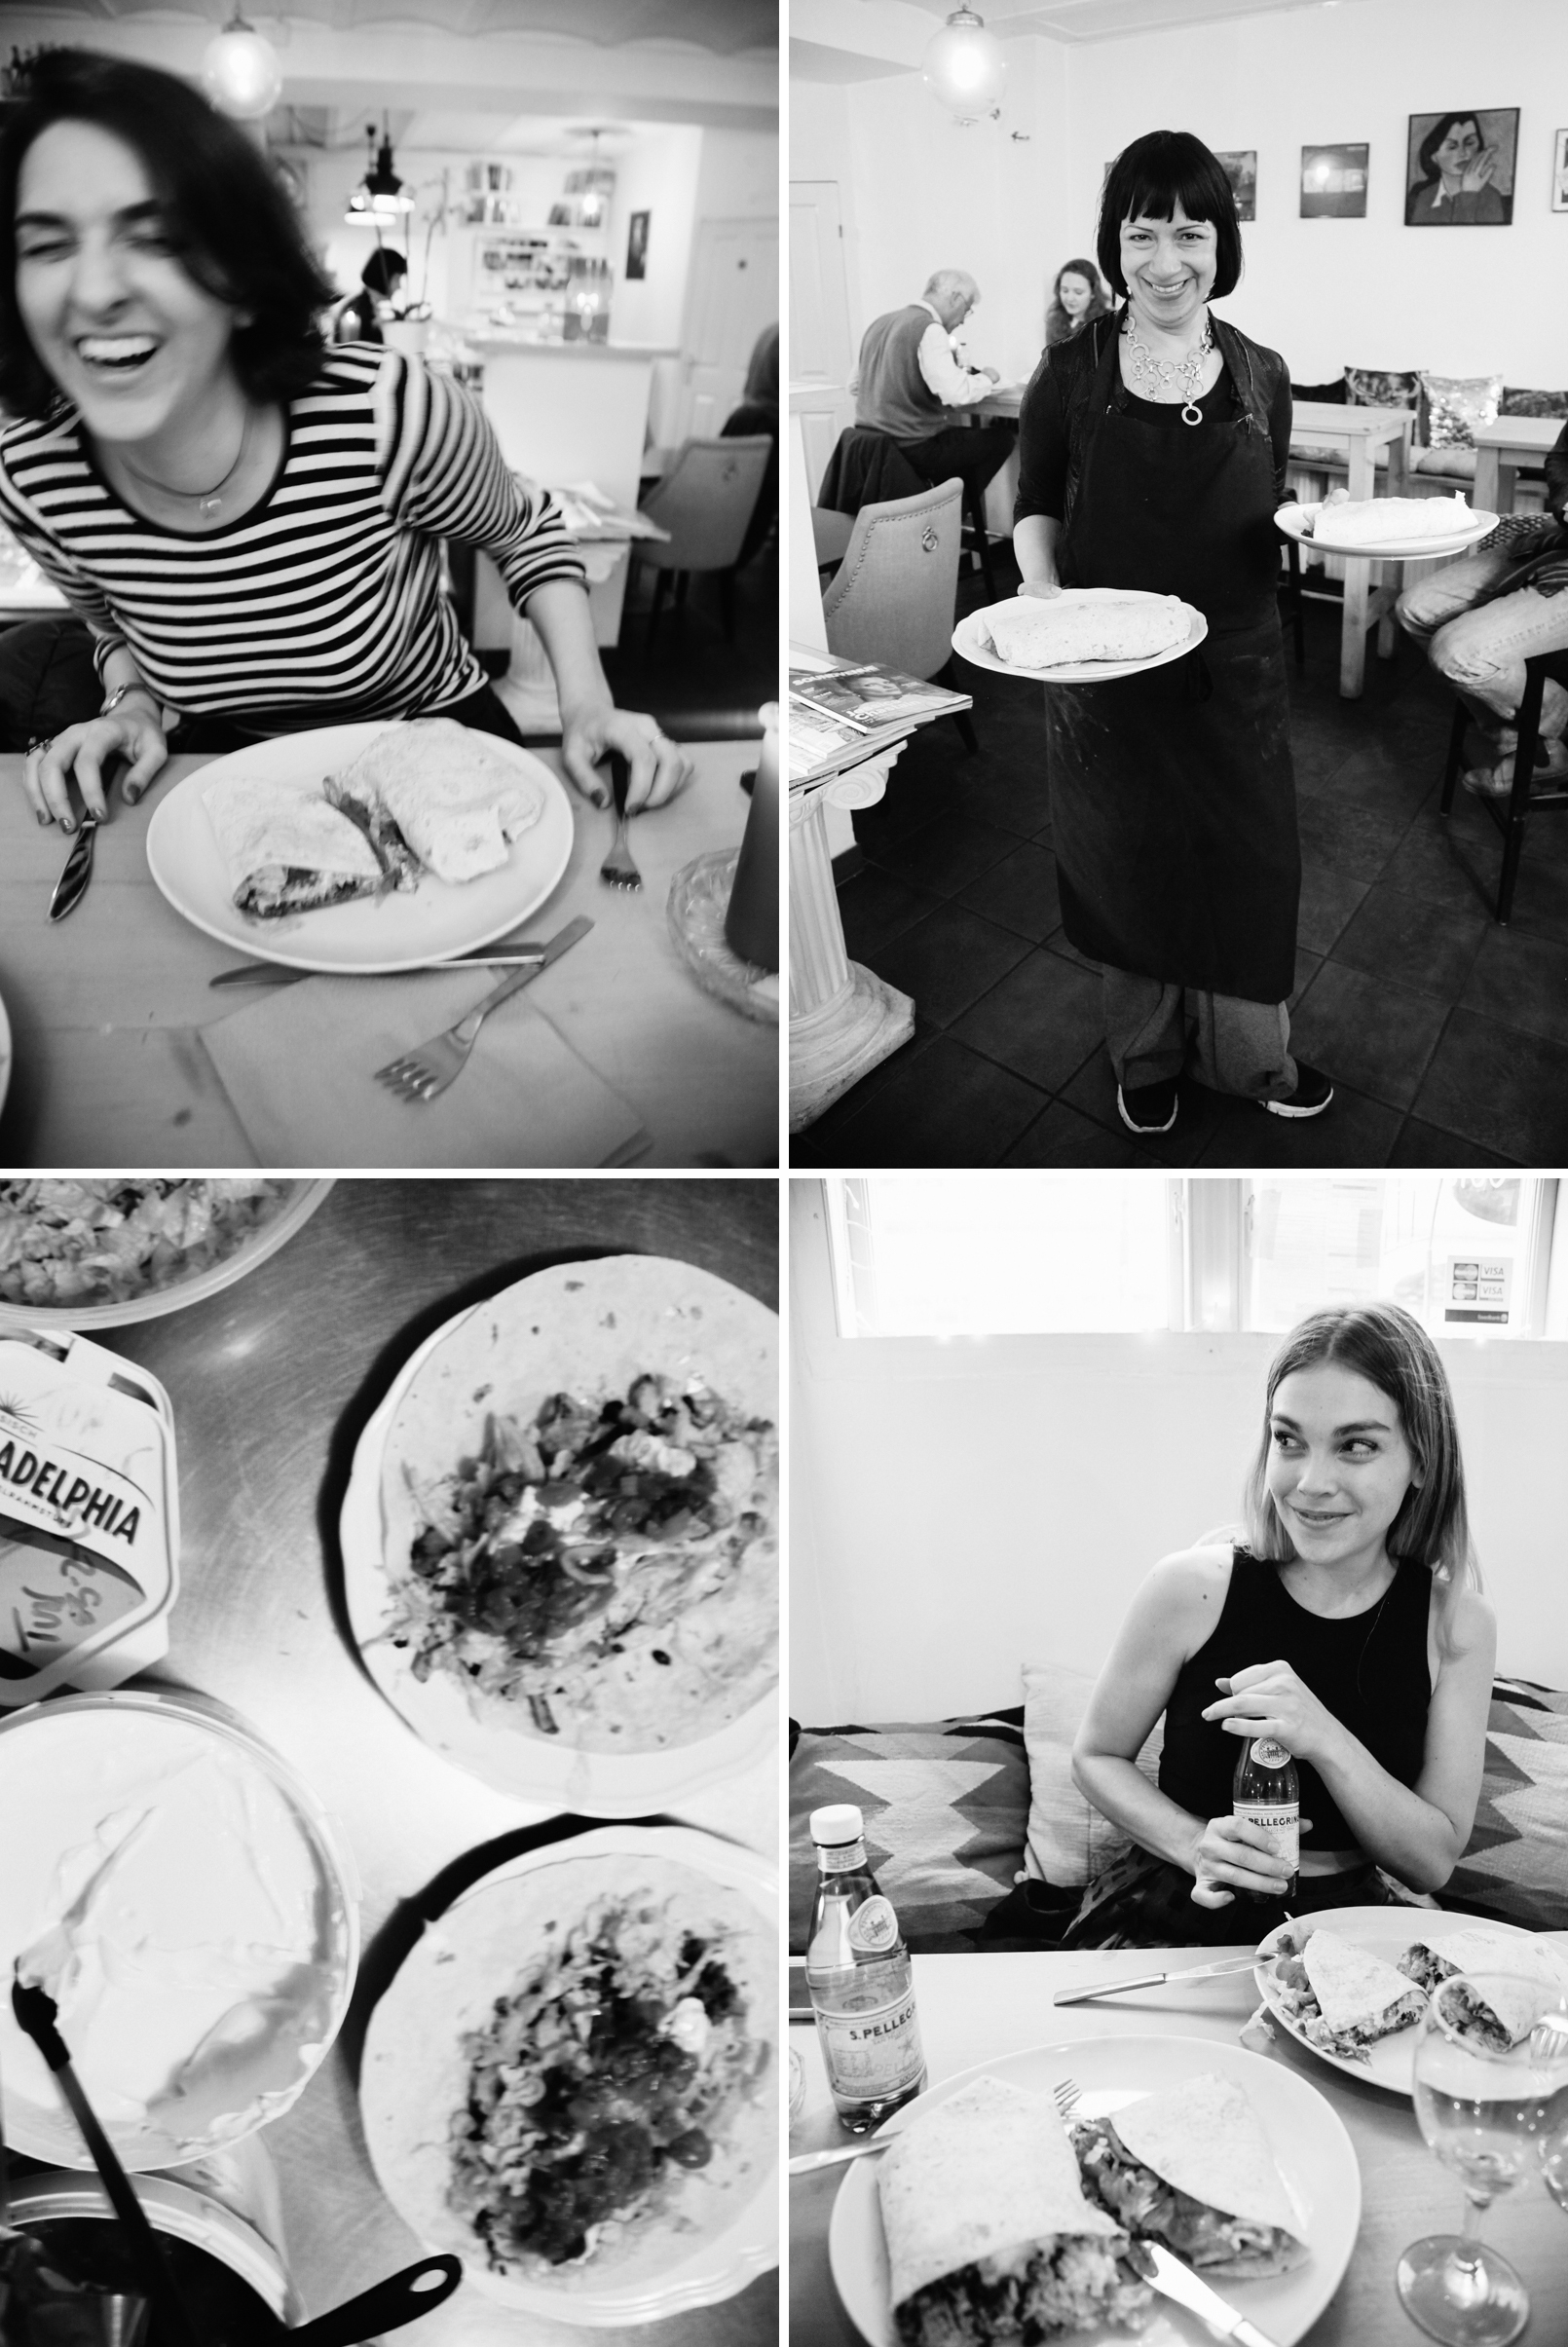 Rebecca, Freya, Miriam - B&W at Taste of San Fransisco | Scandinavia Standard